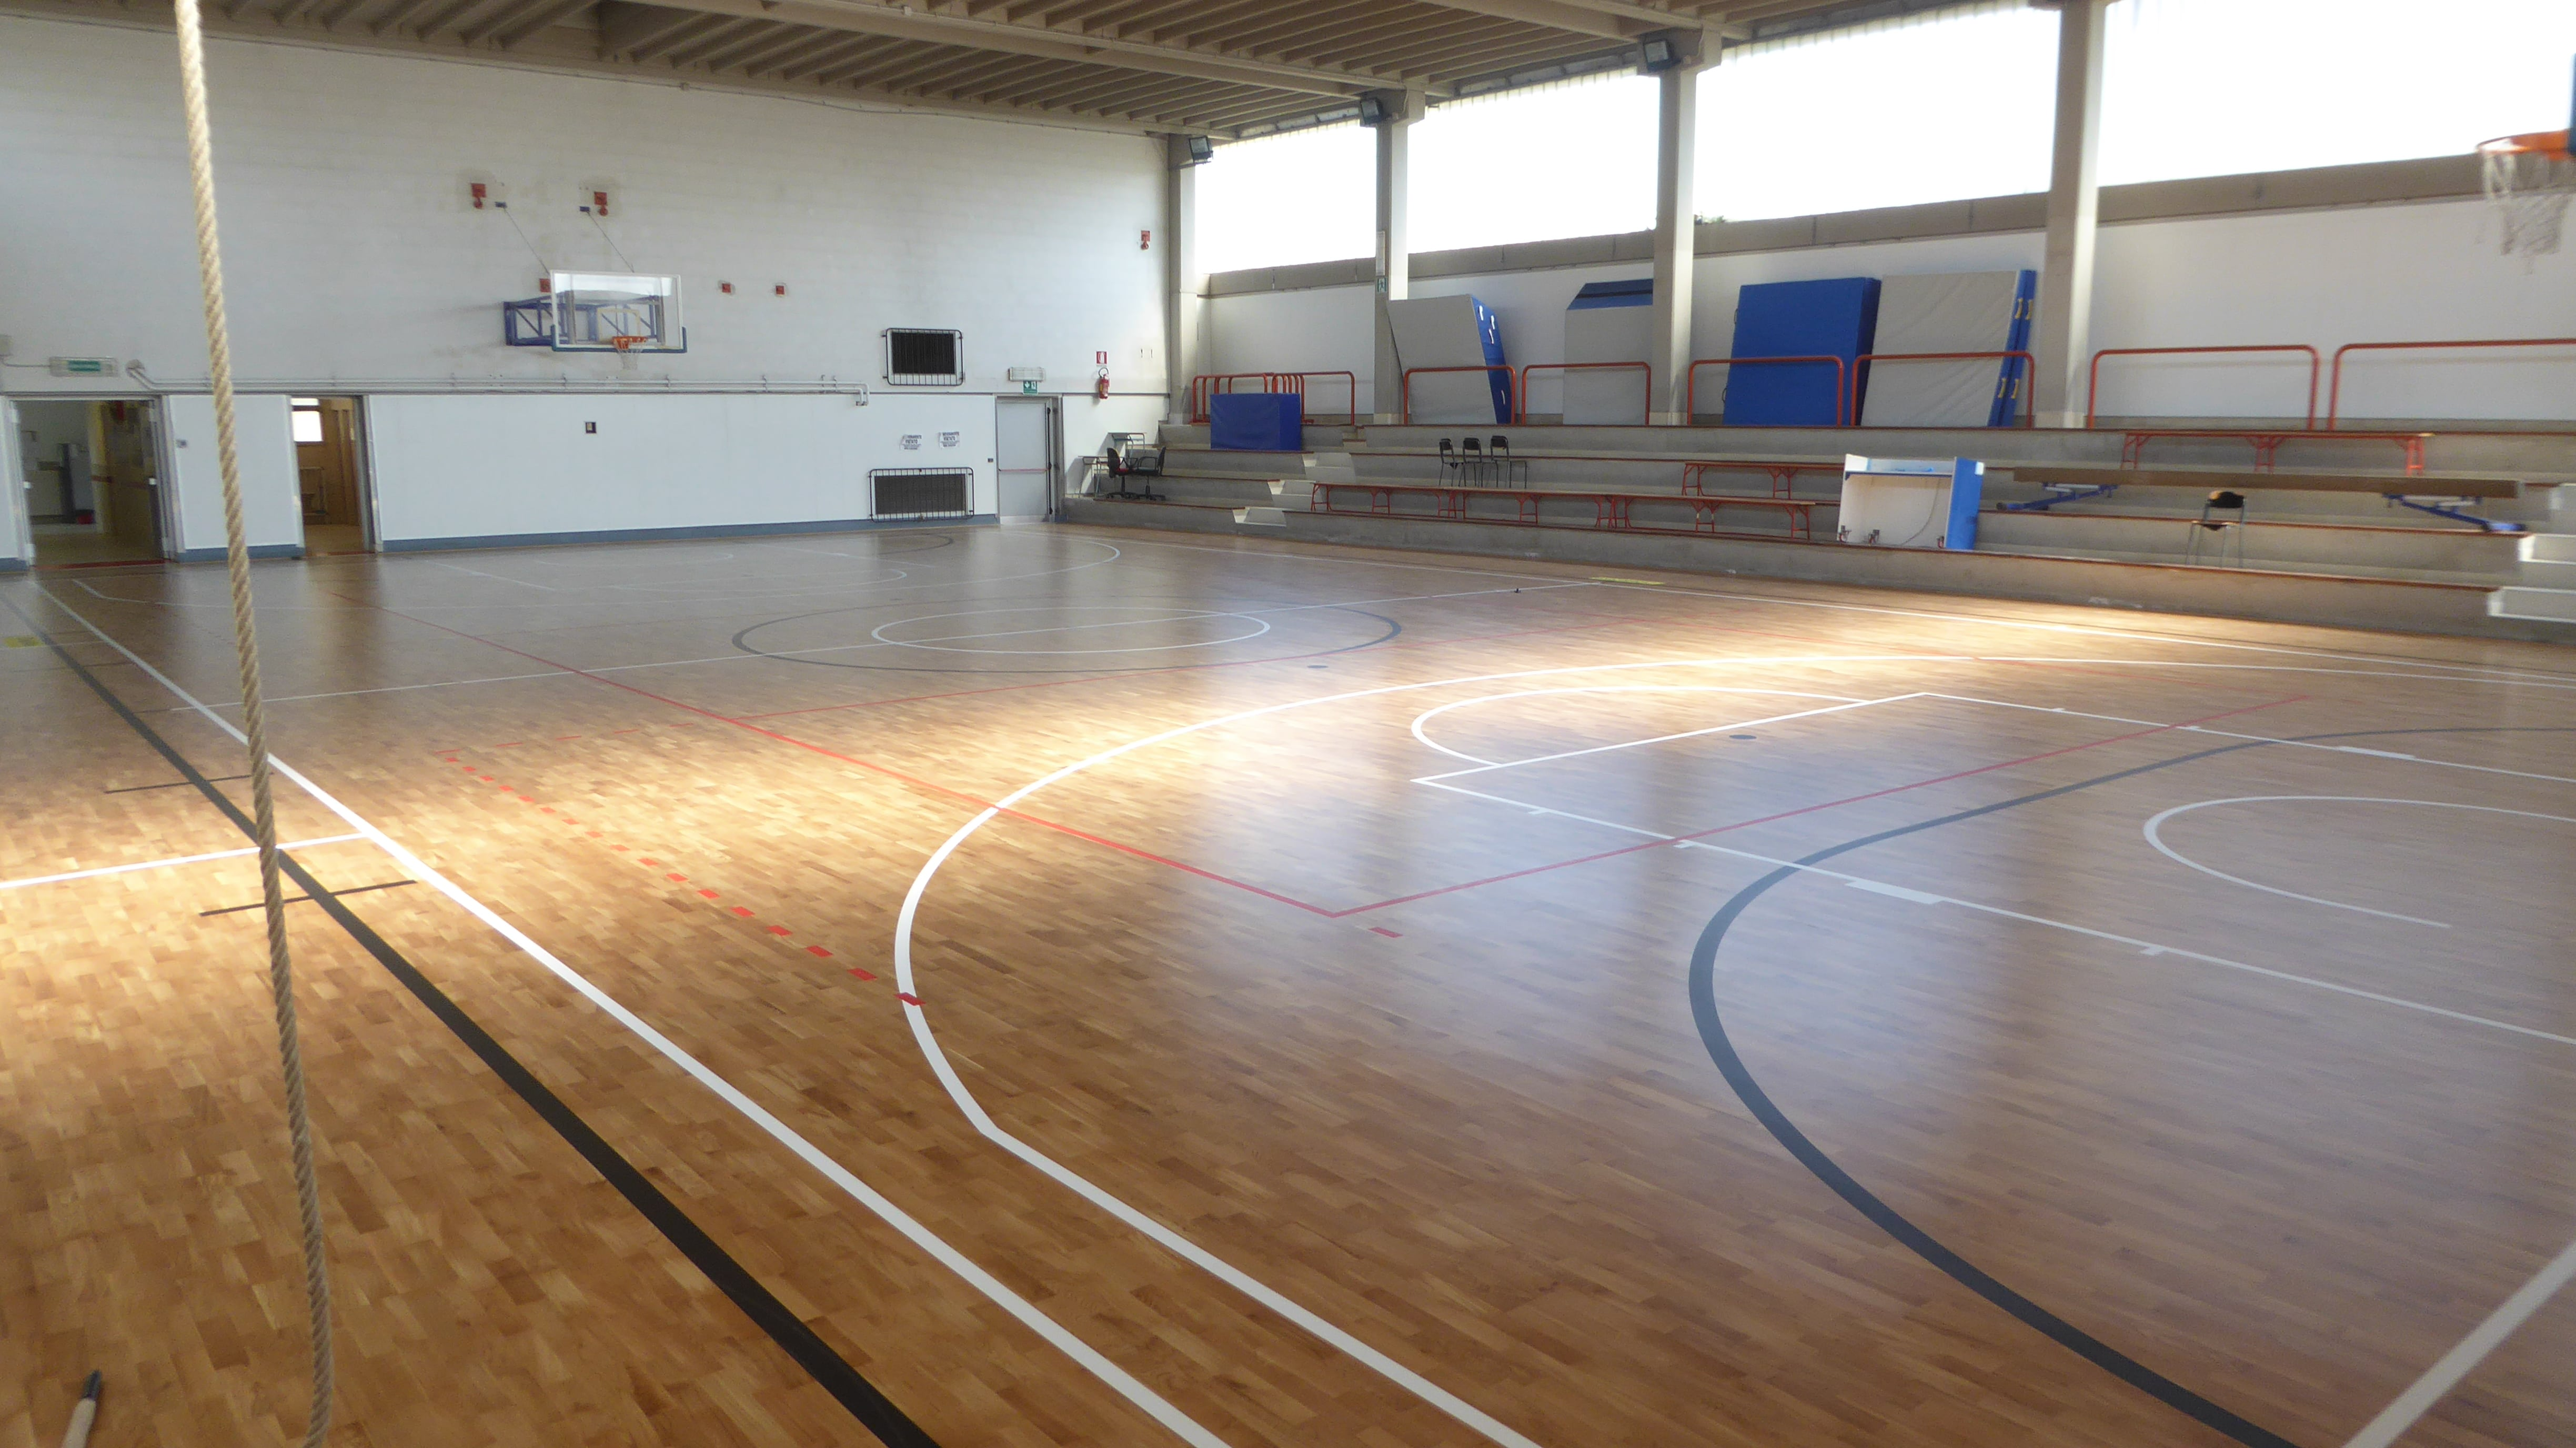 The new look of the gym